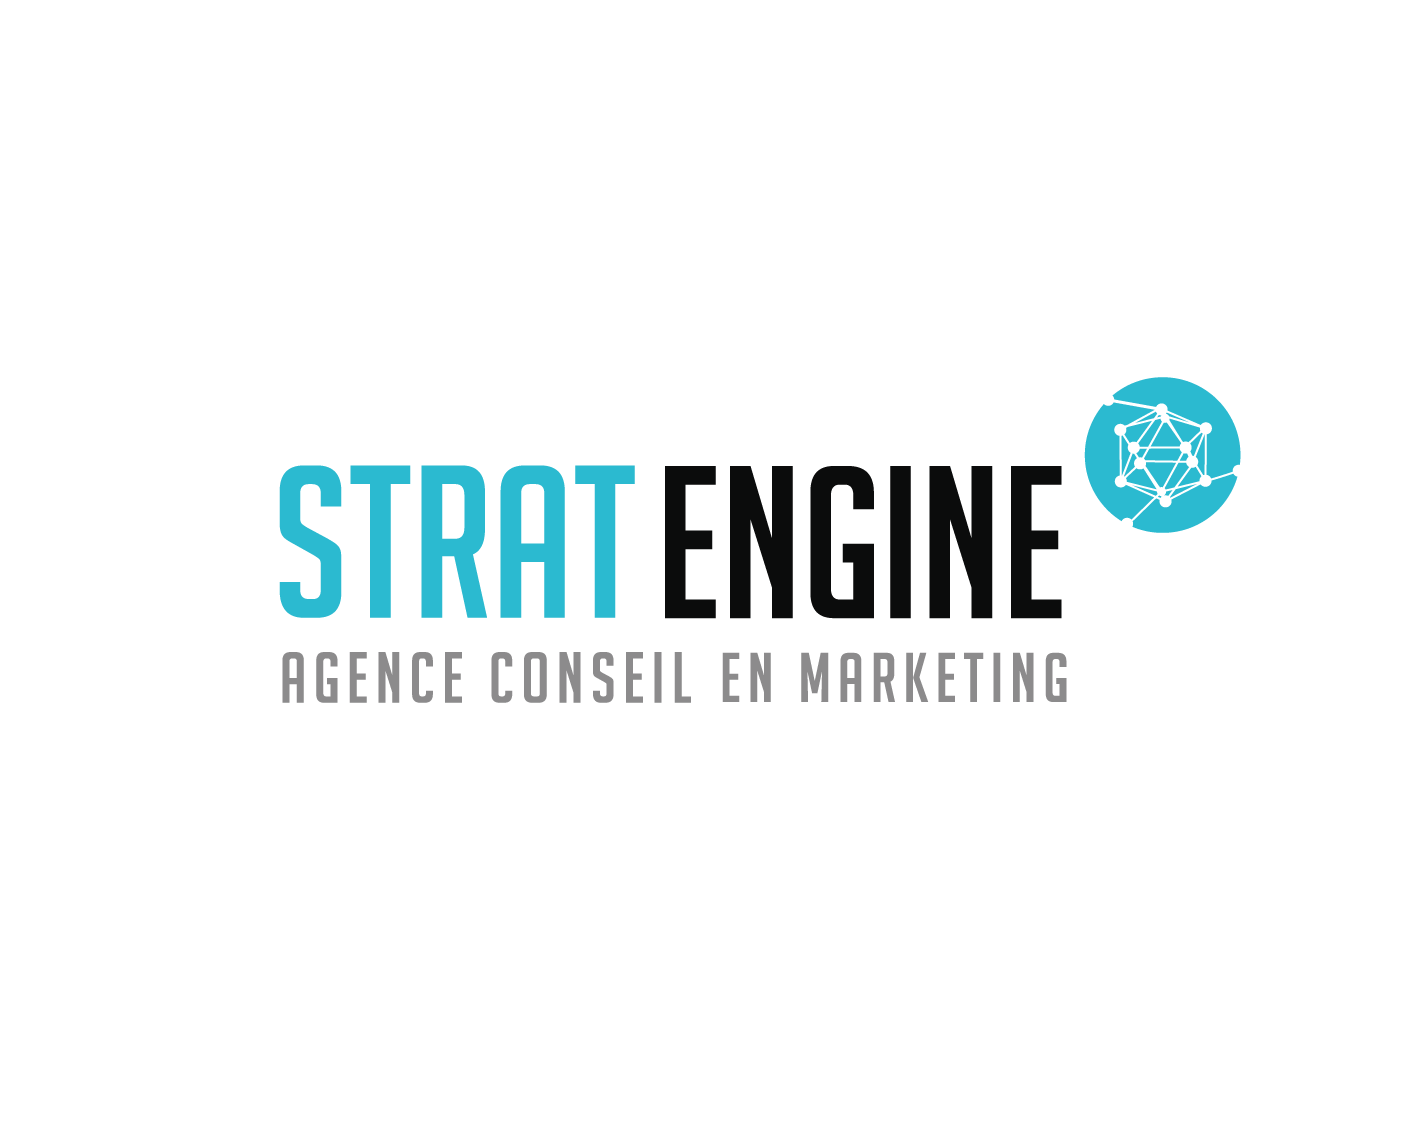 logo strat engine